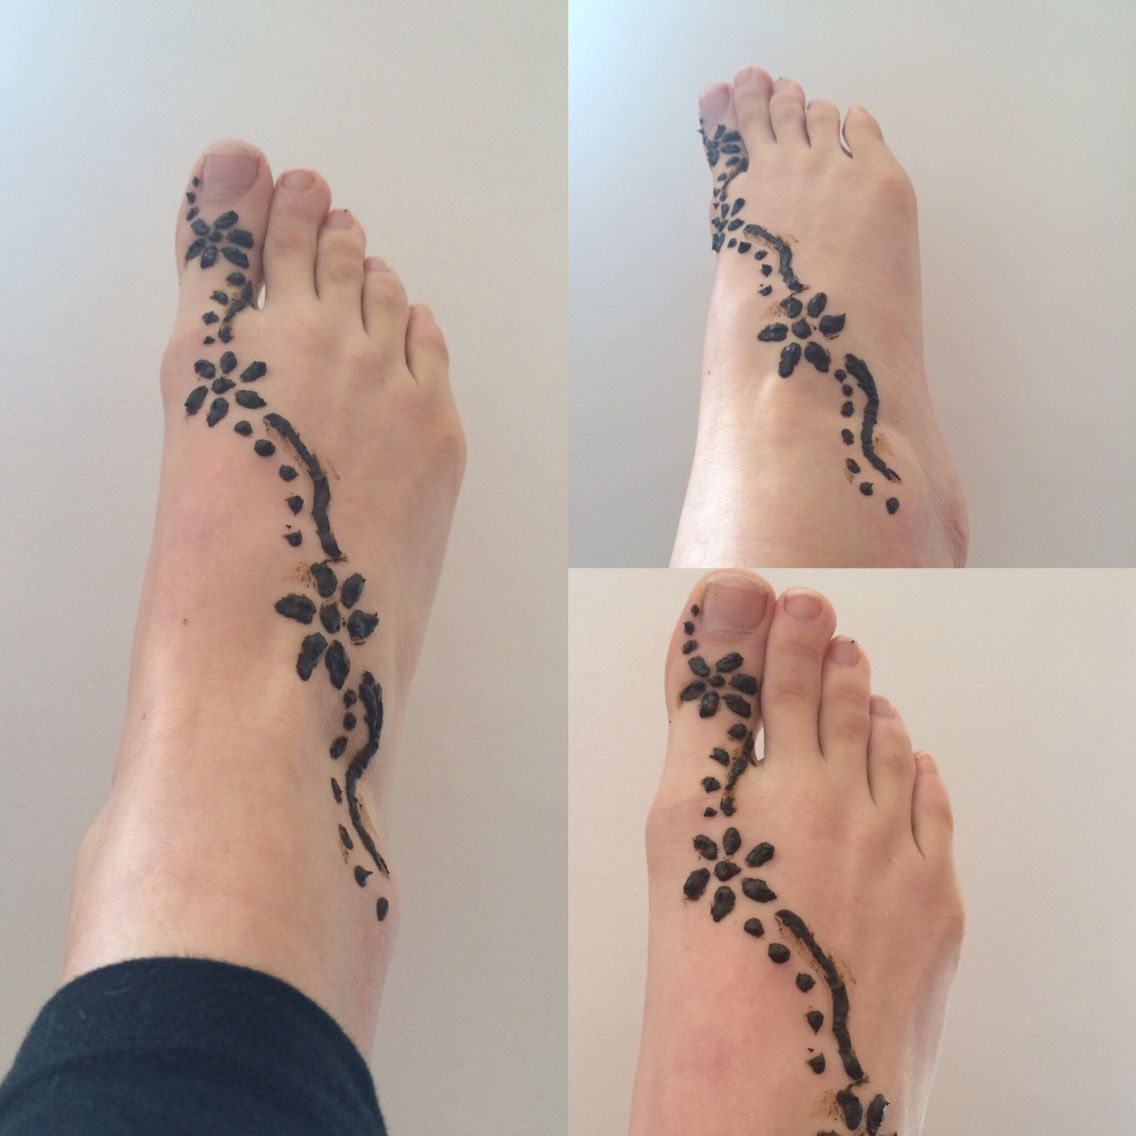 Simple Henna Tattoo Designs For Feet: EASY Henna Design For Beginners! Takes 10-15 Mins